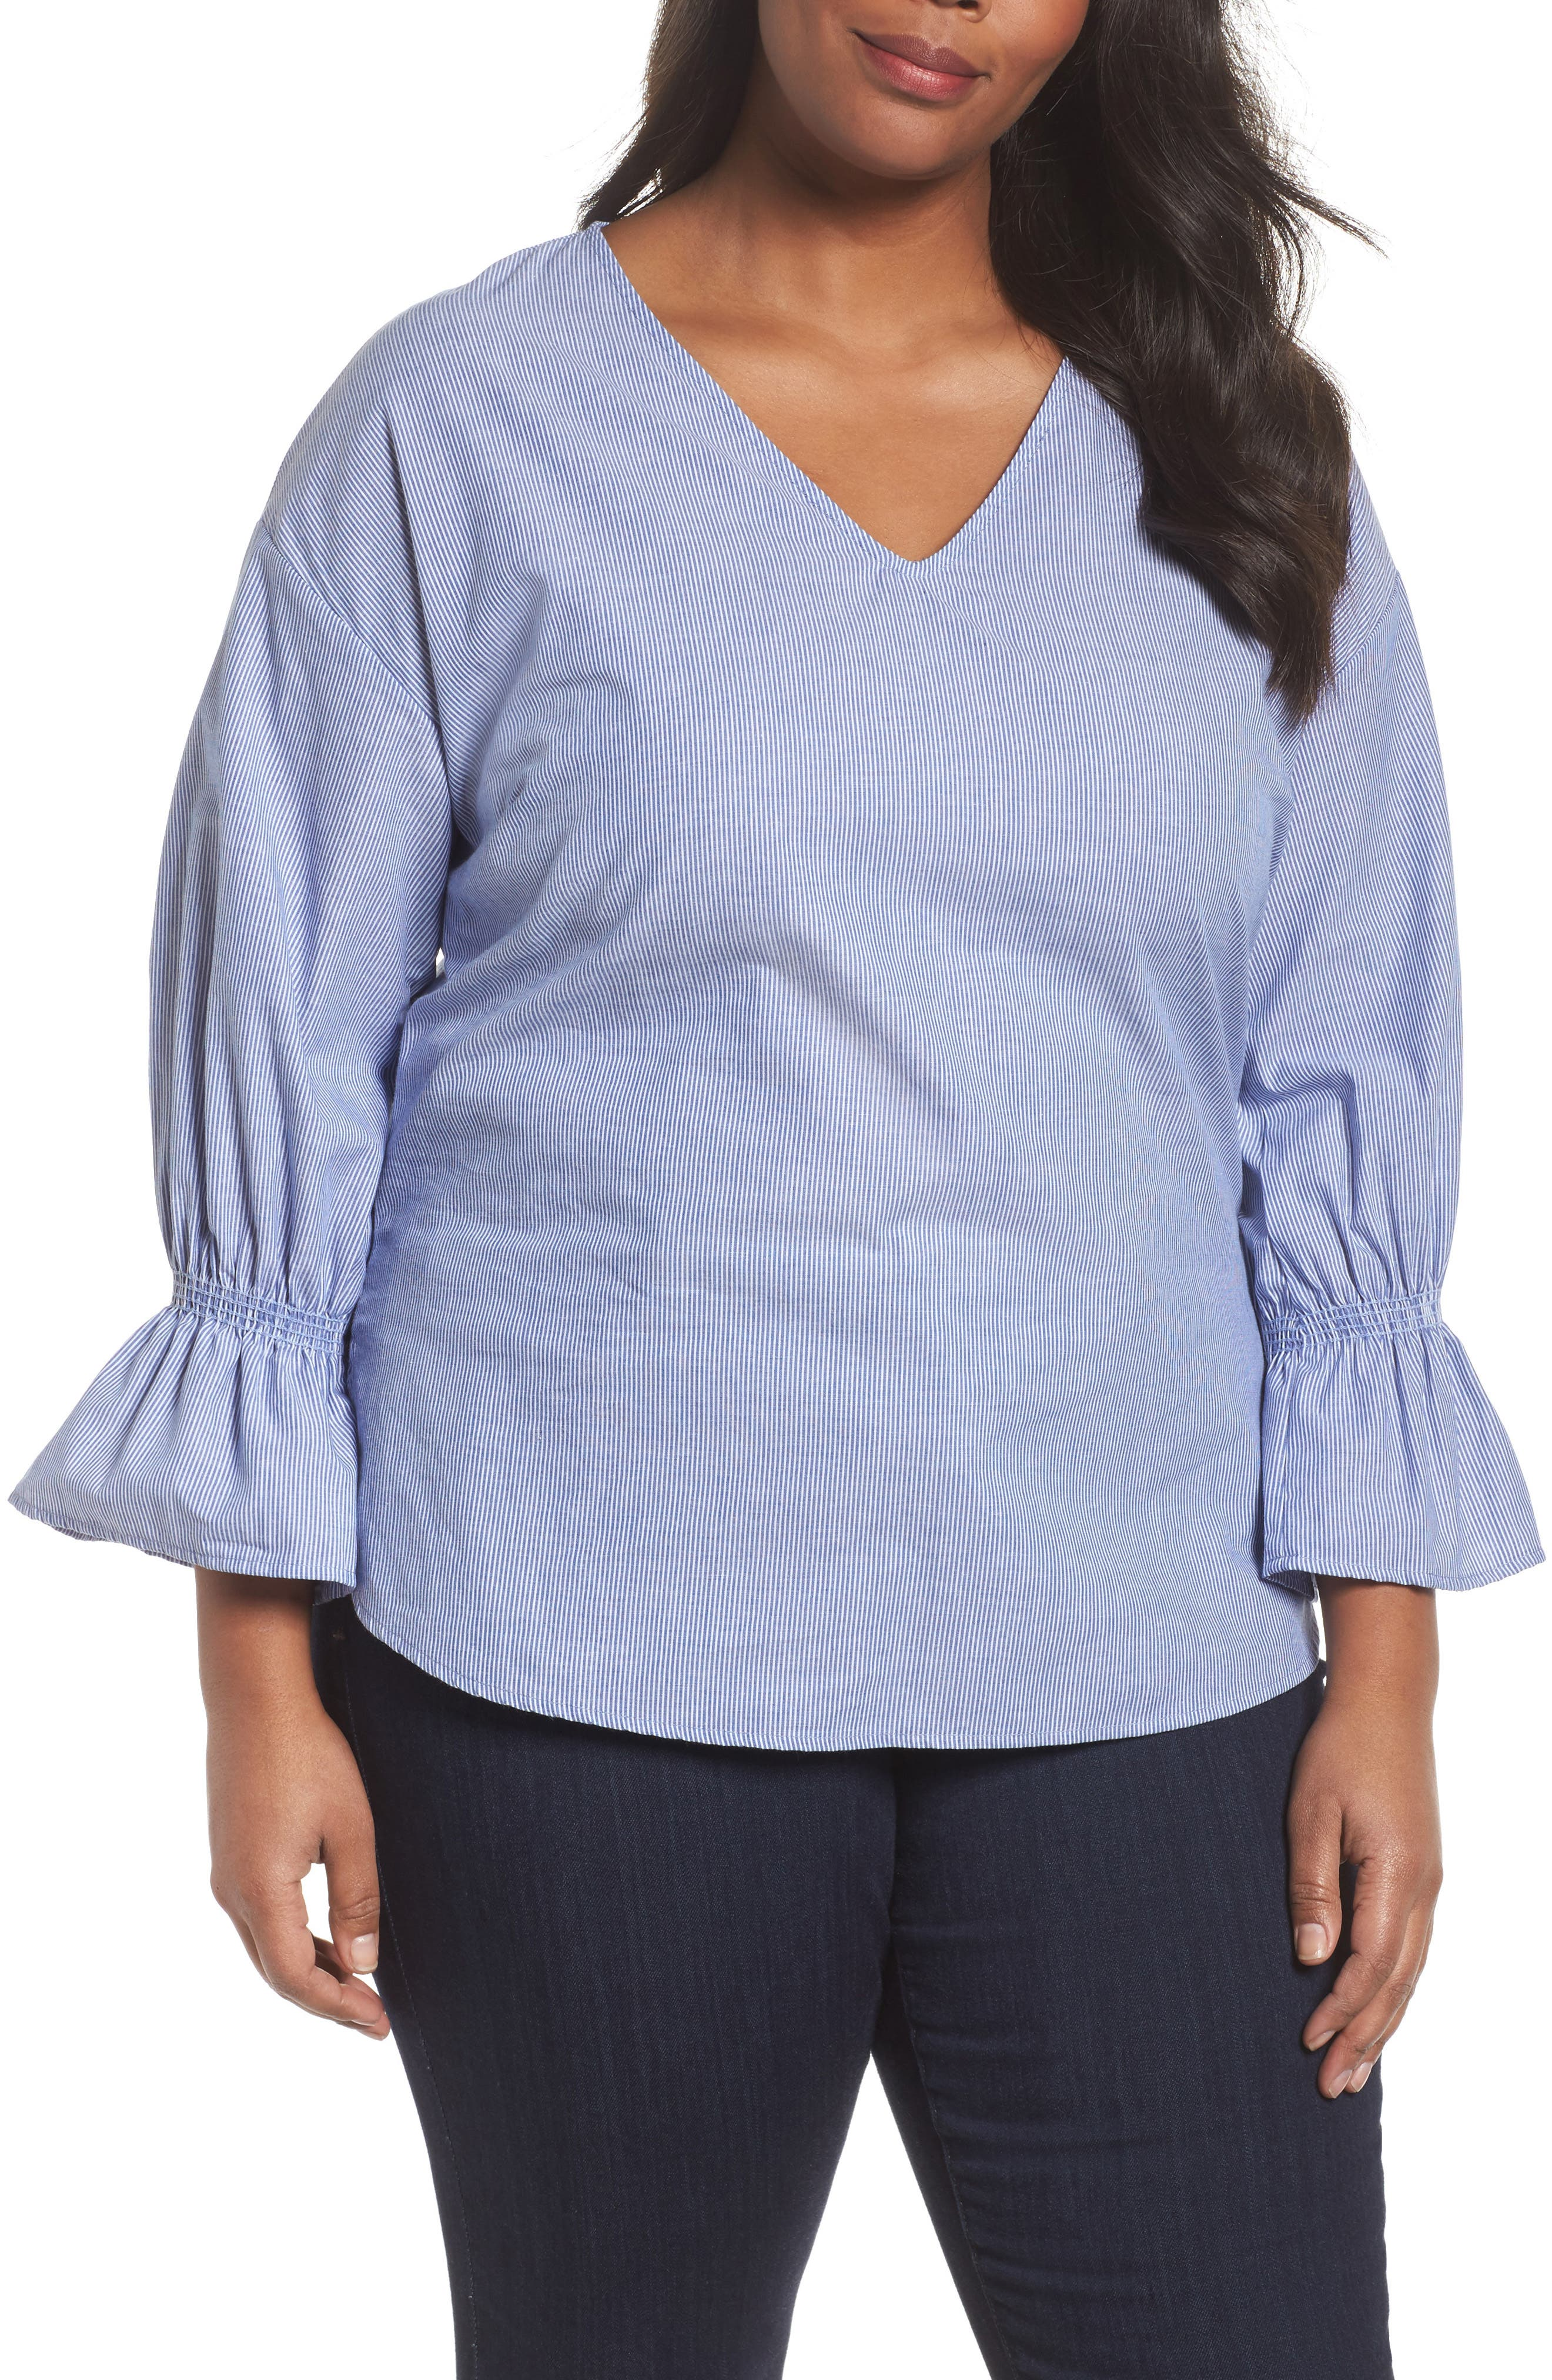 Main Image - Sejour Pinstripe Bell Cuff Top (Plus Size)